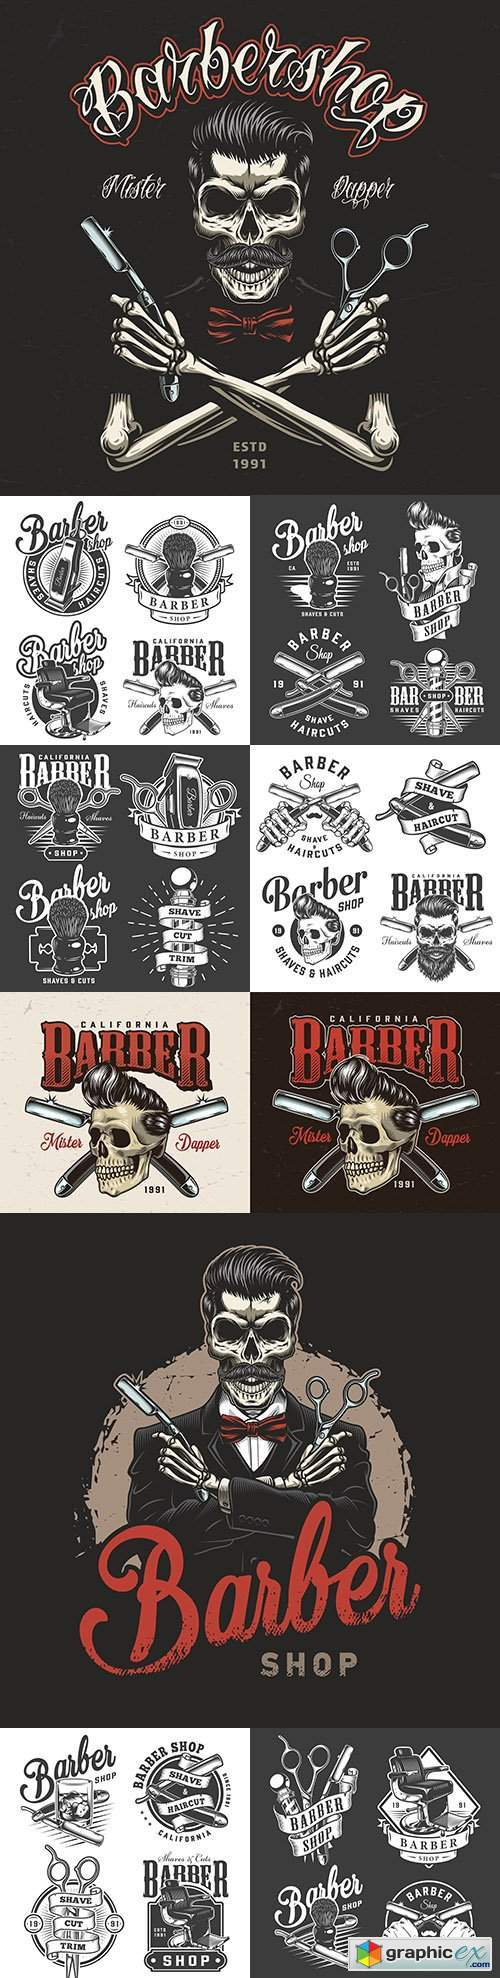 Vintage monochrome design labels for men 's barbershop